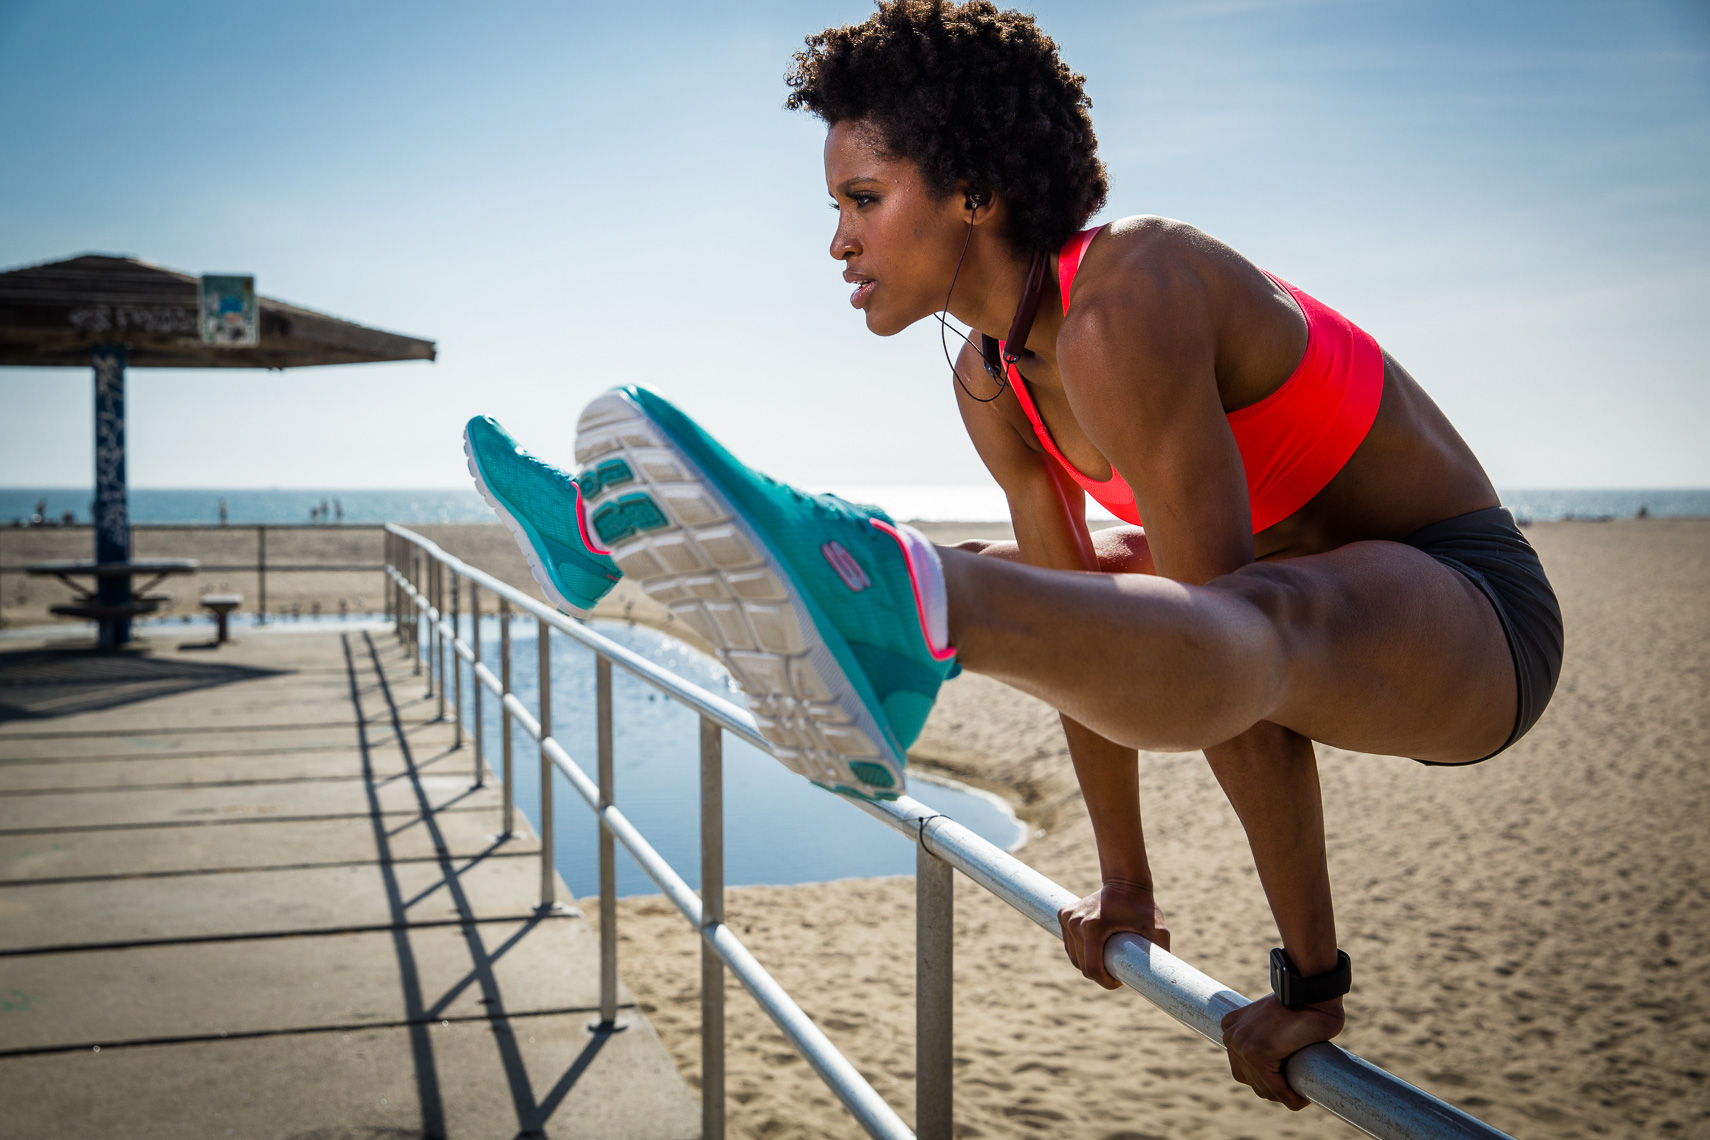 Santa Monica Pier Athletic Shoot for Leophile Sport Headphones